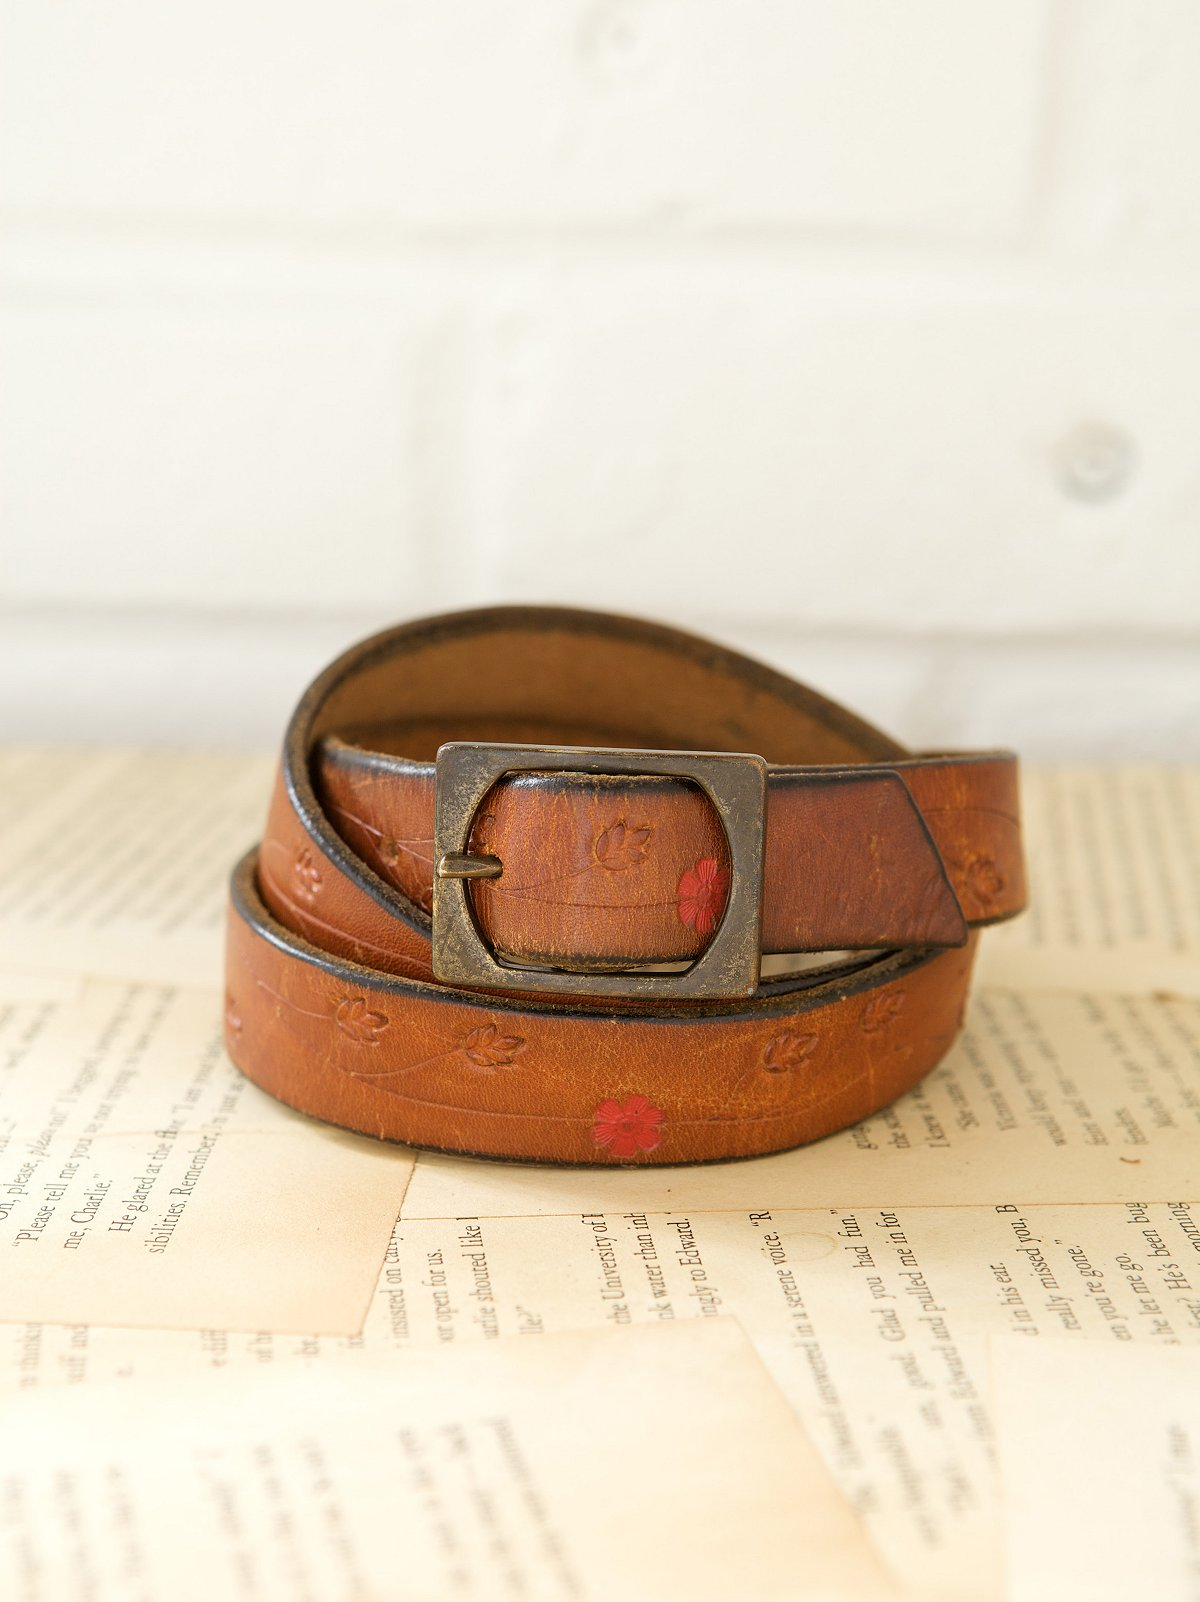 Vintage 1970s Meadow Belt